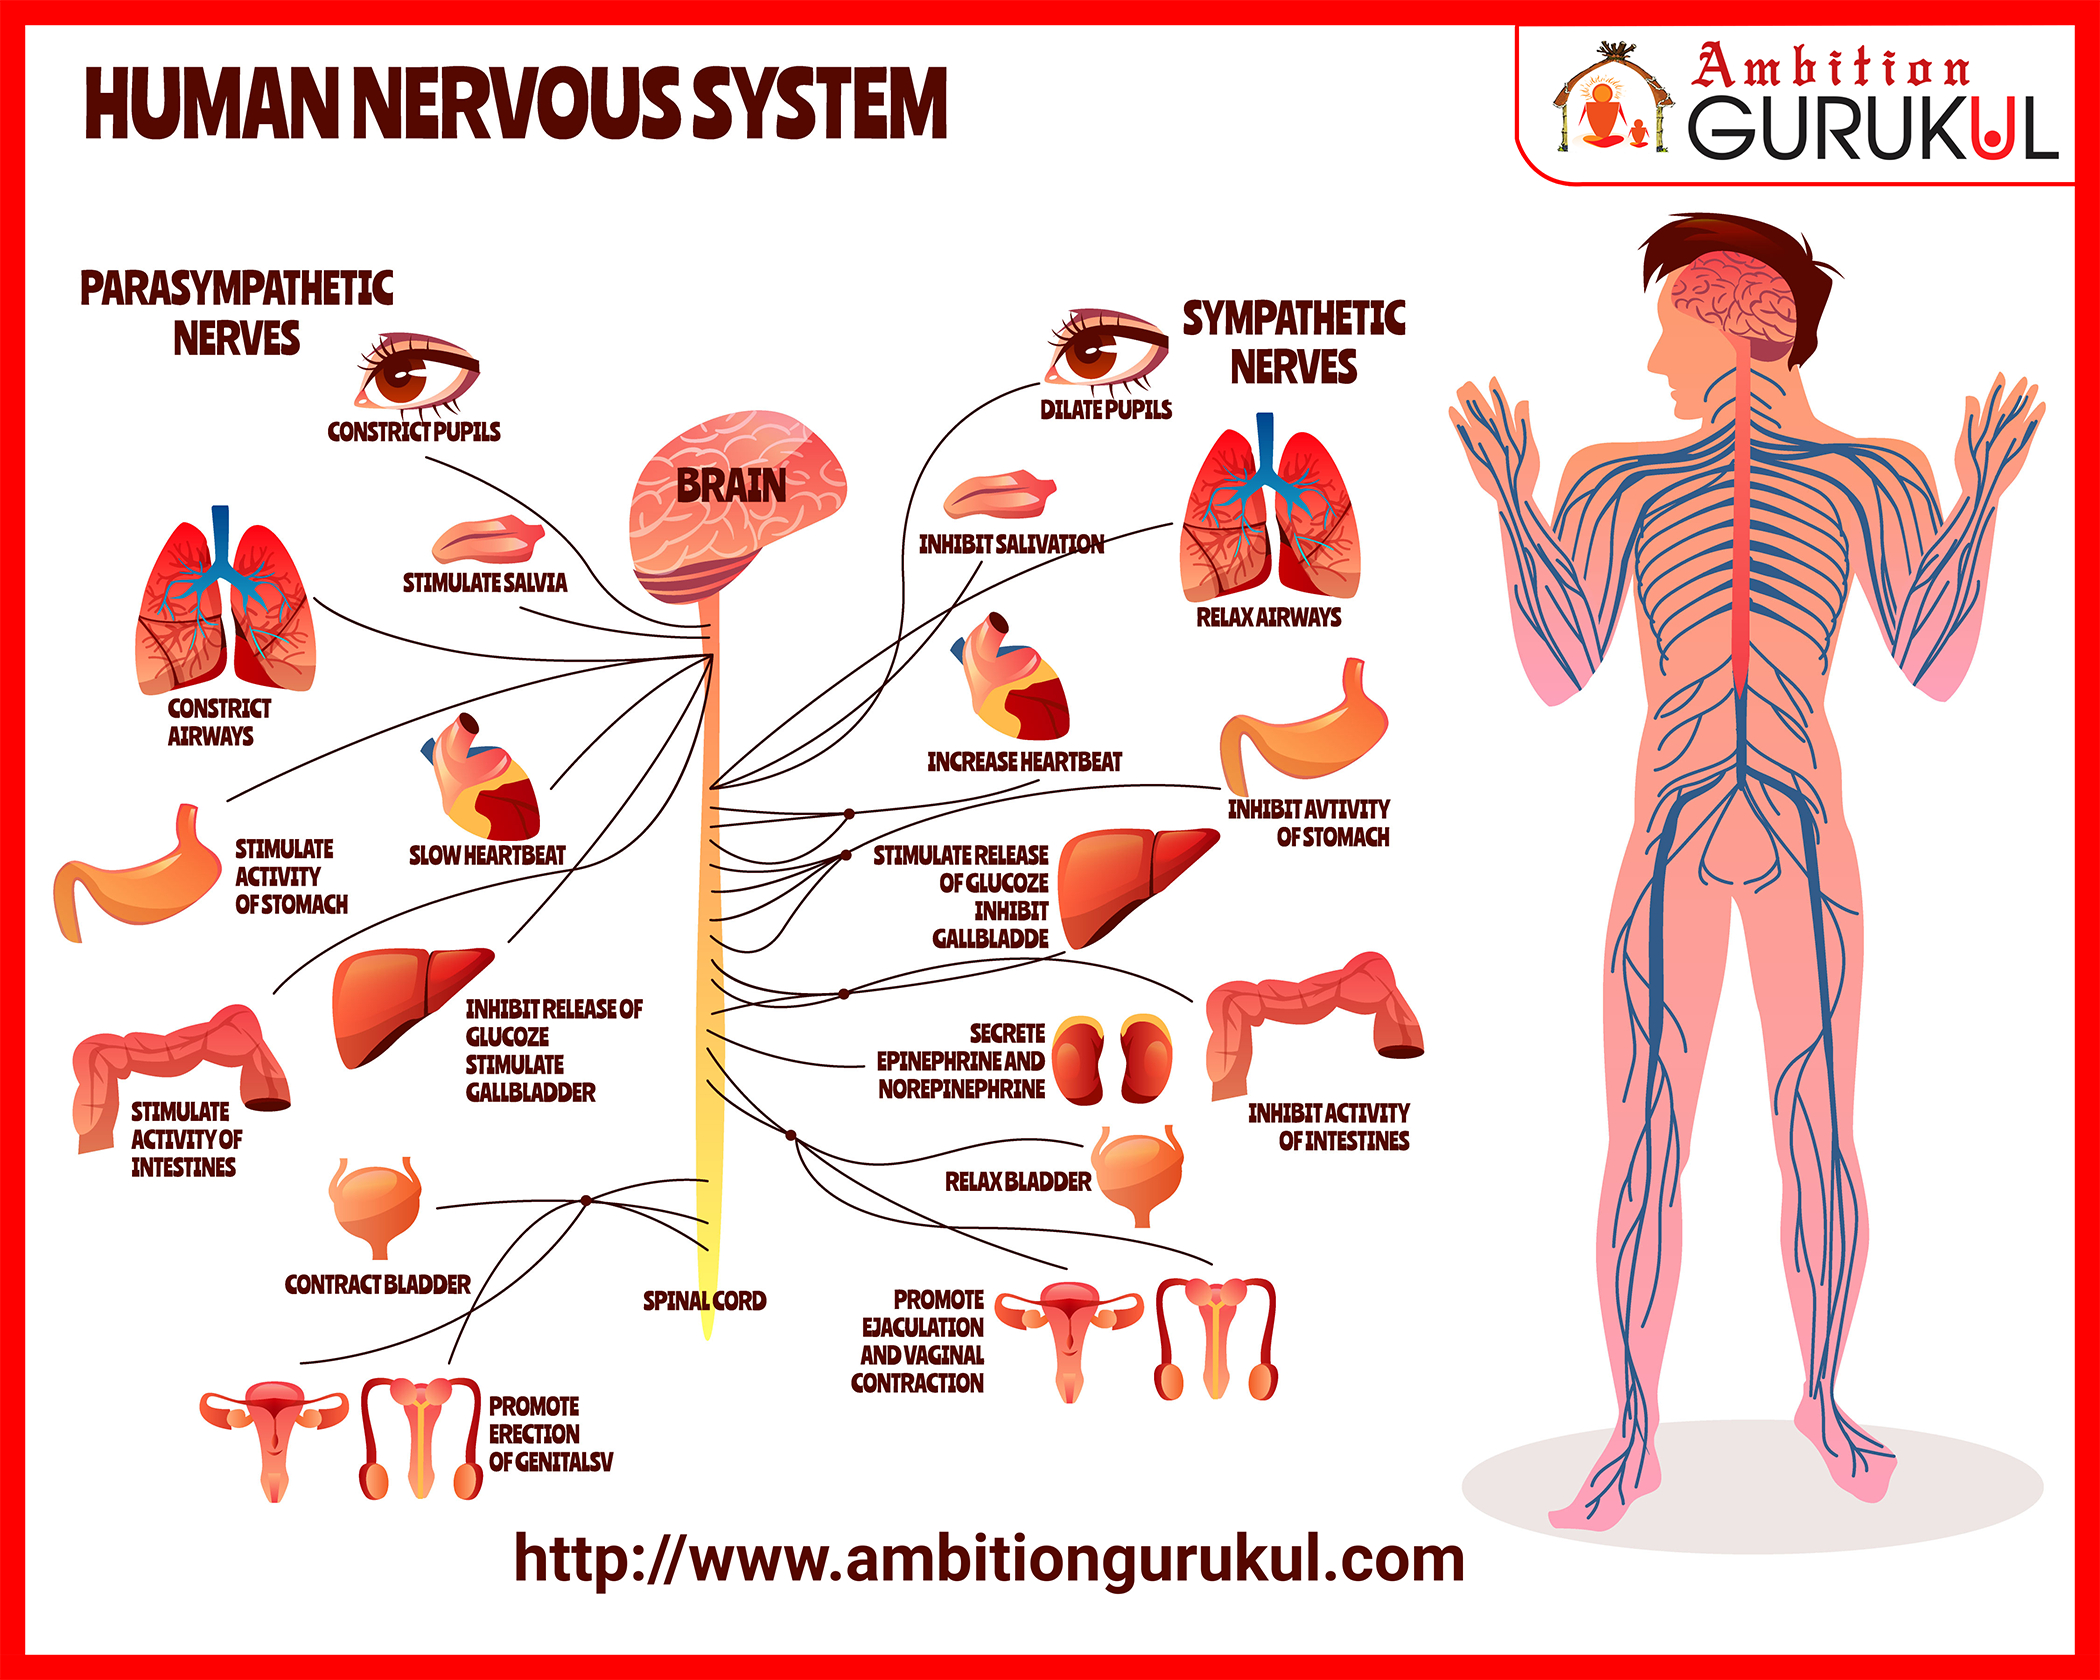 Humannervoussystem The Part Of The Human Body That